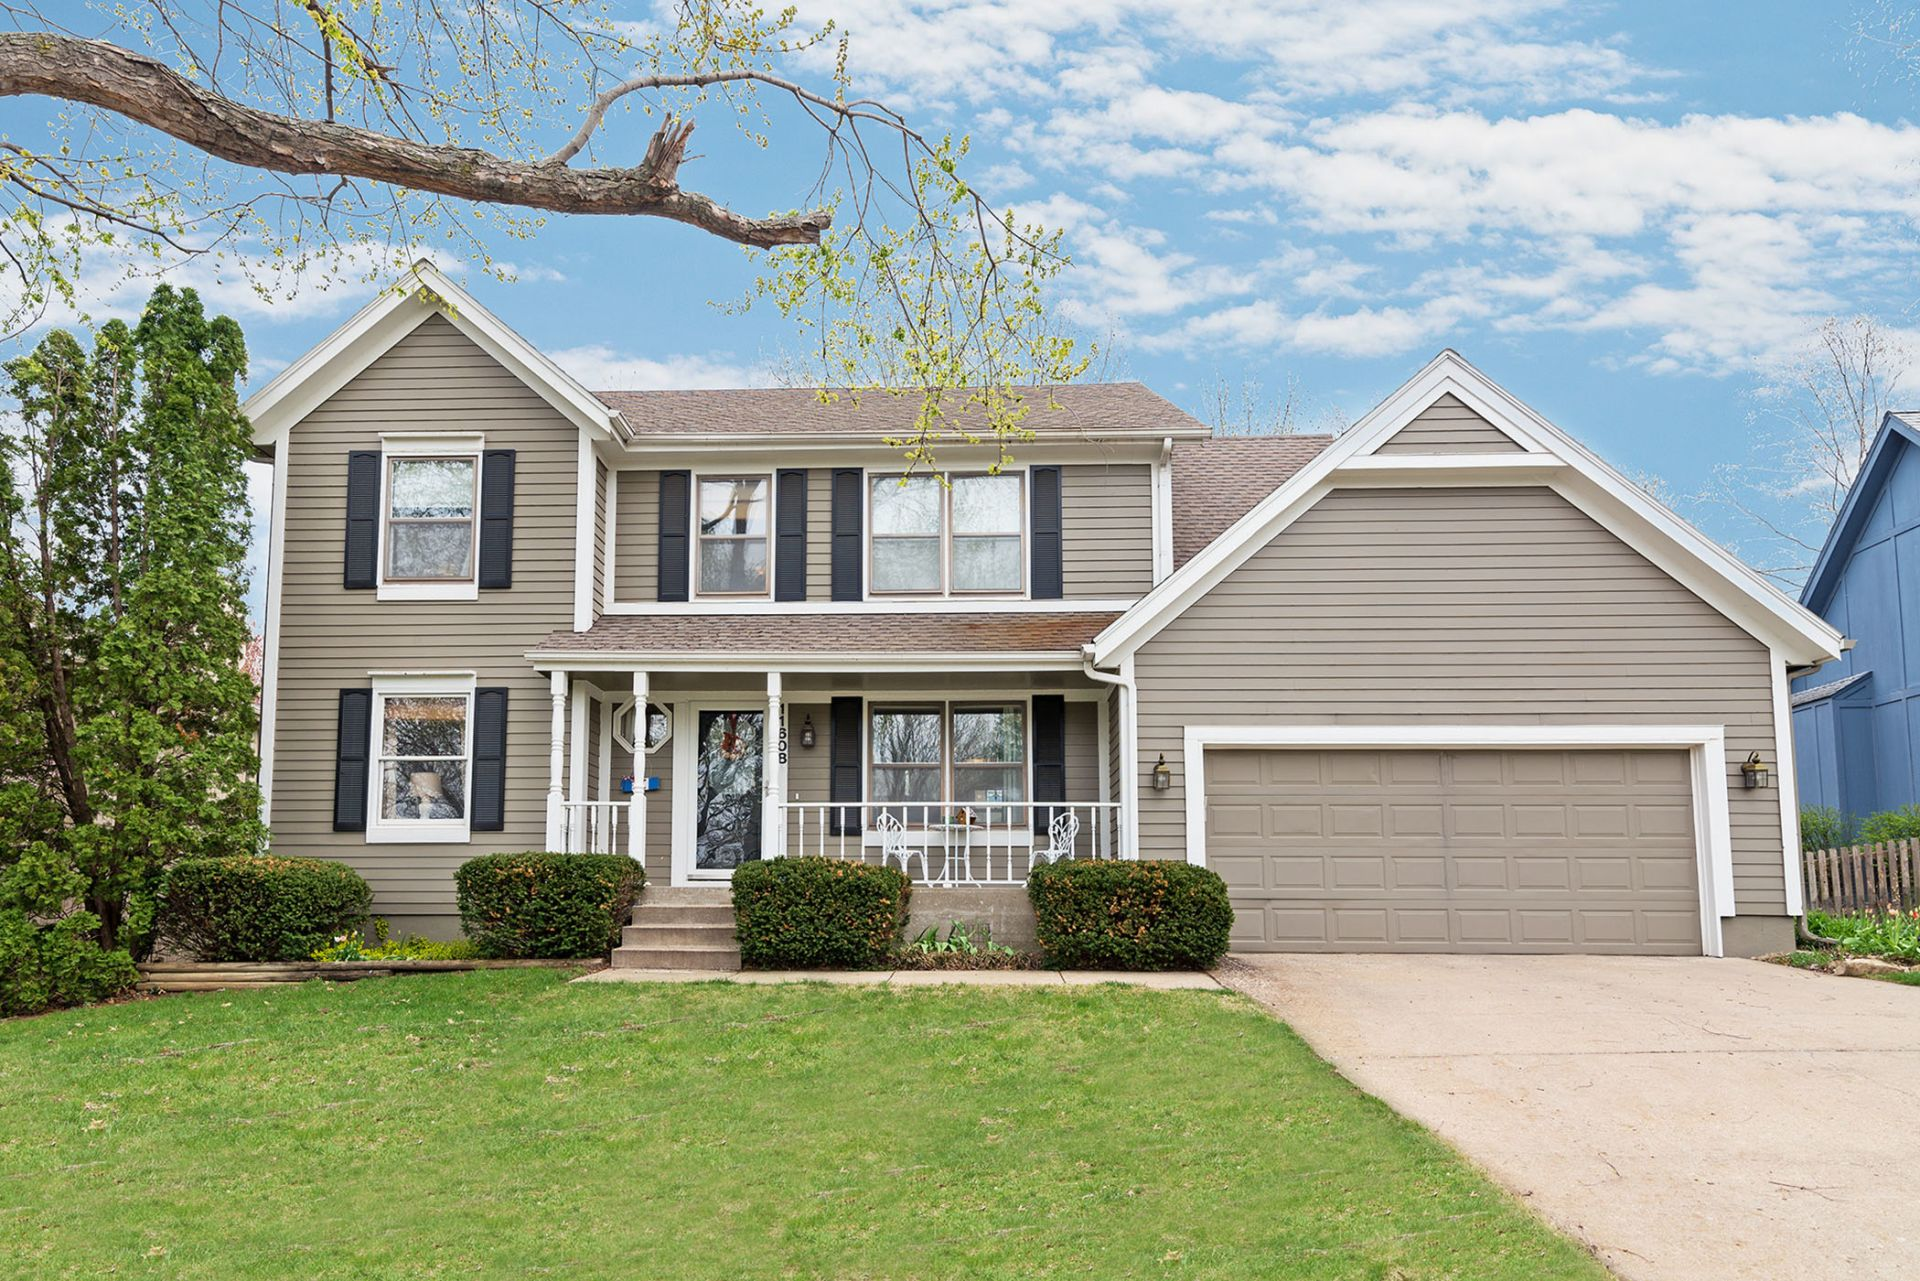 JUST LISTED! Beautiful 4+BR Home in Desirable Brittany Hills!